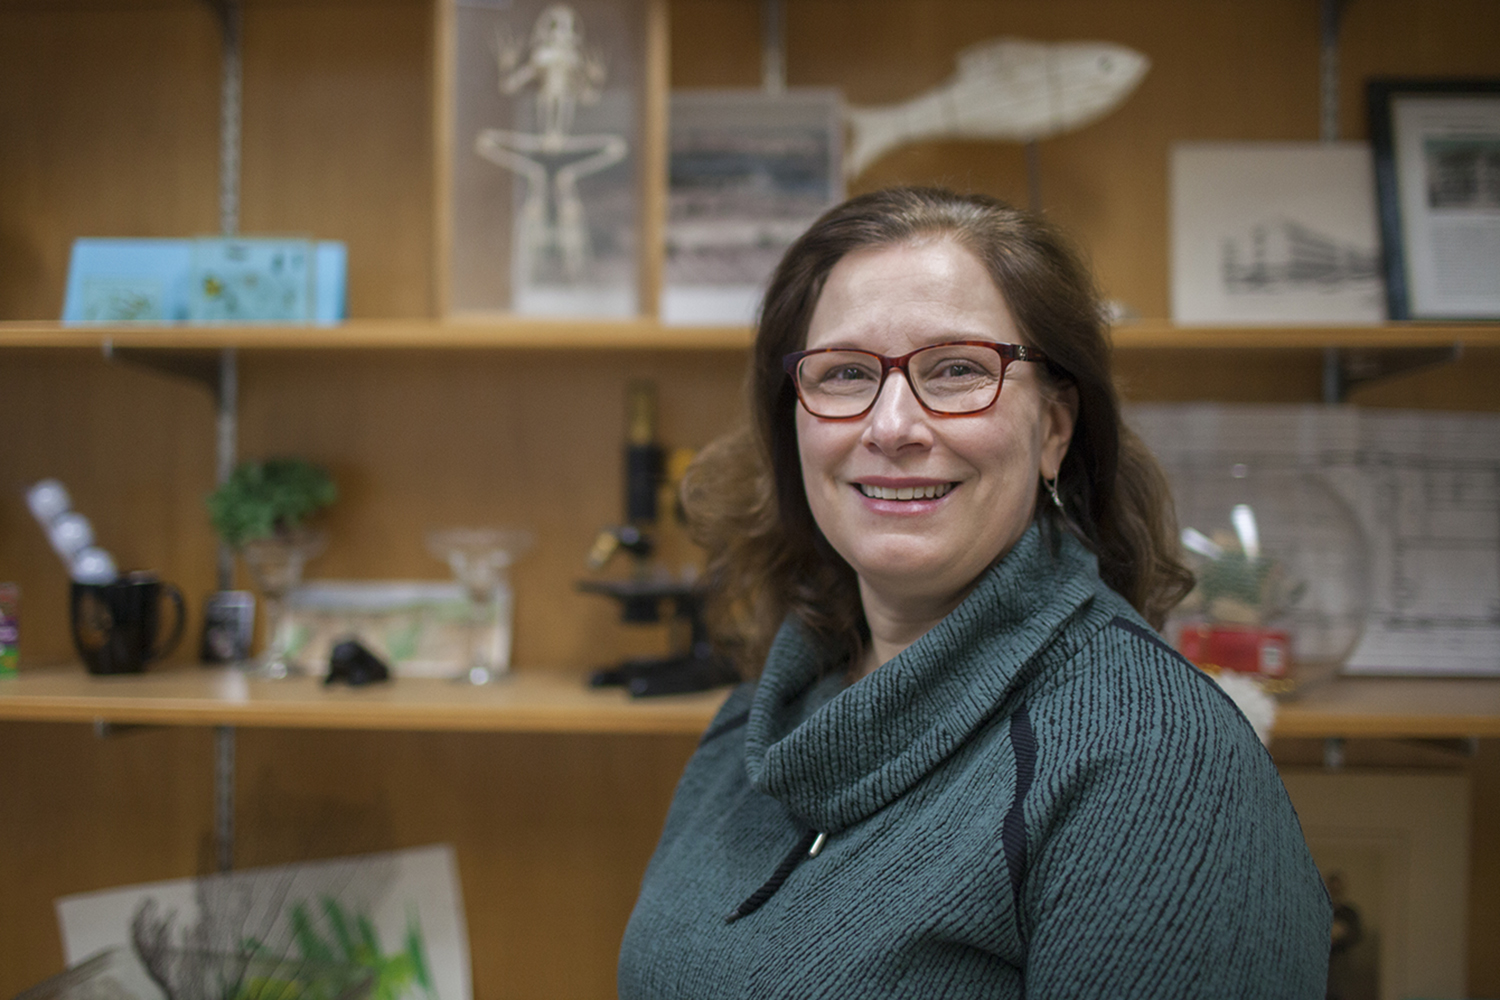 Chair of the University of Iowa Department of Biology, Diane C. Slusarski poses for a portrait on Monday, February 11th, 2018.